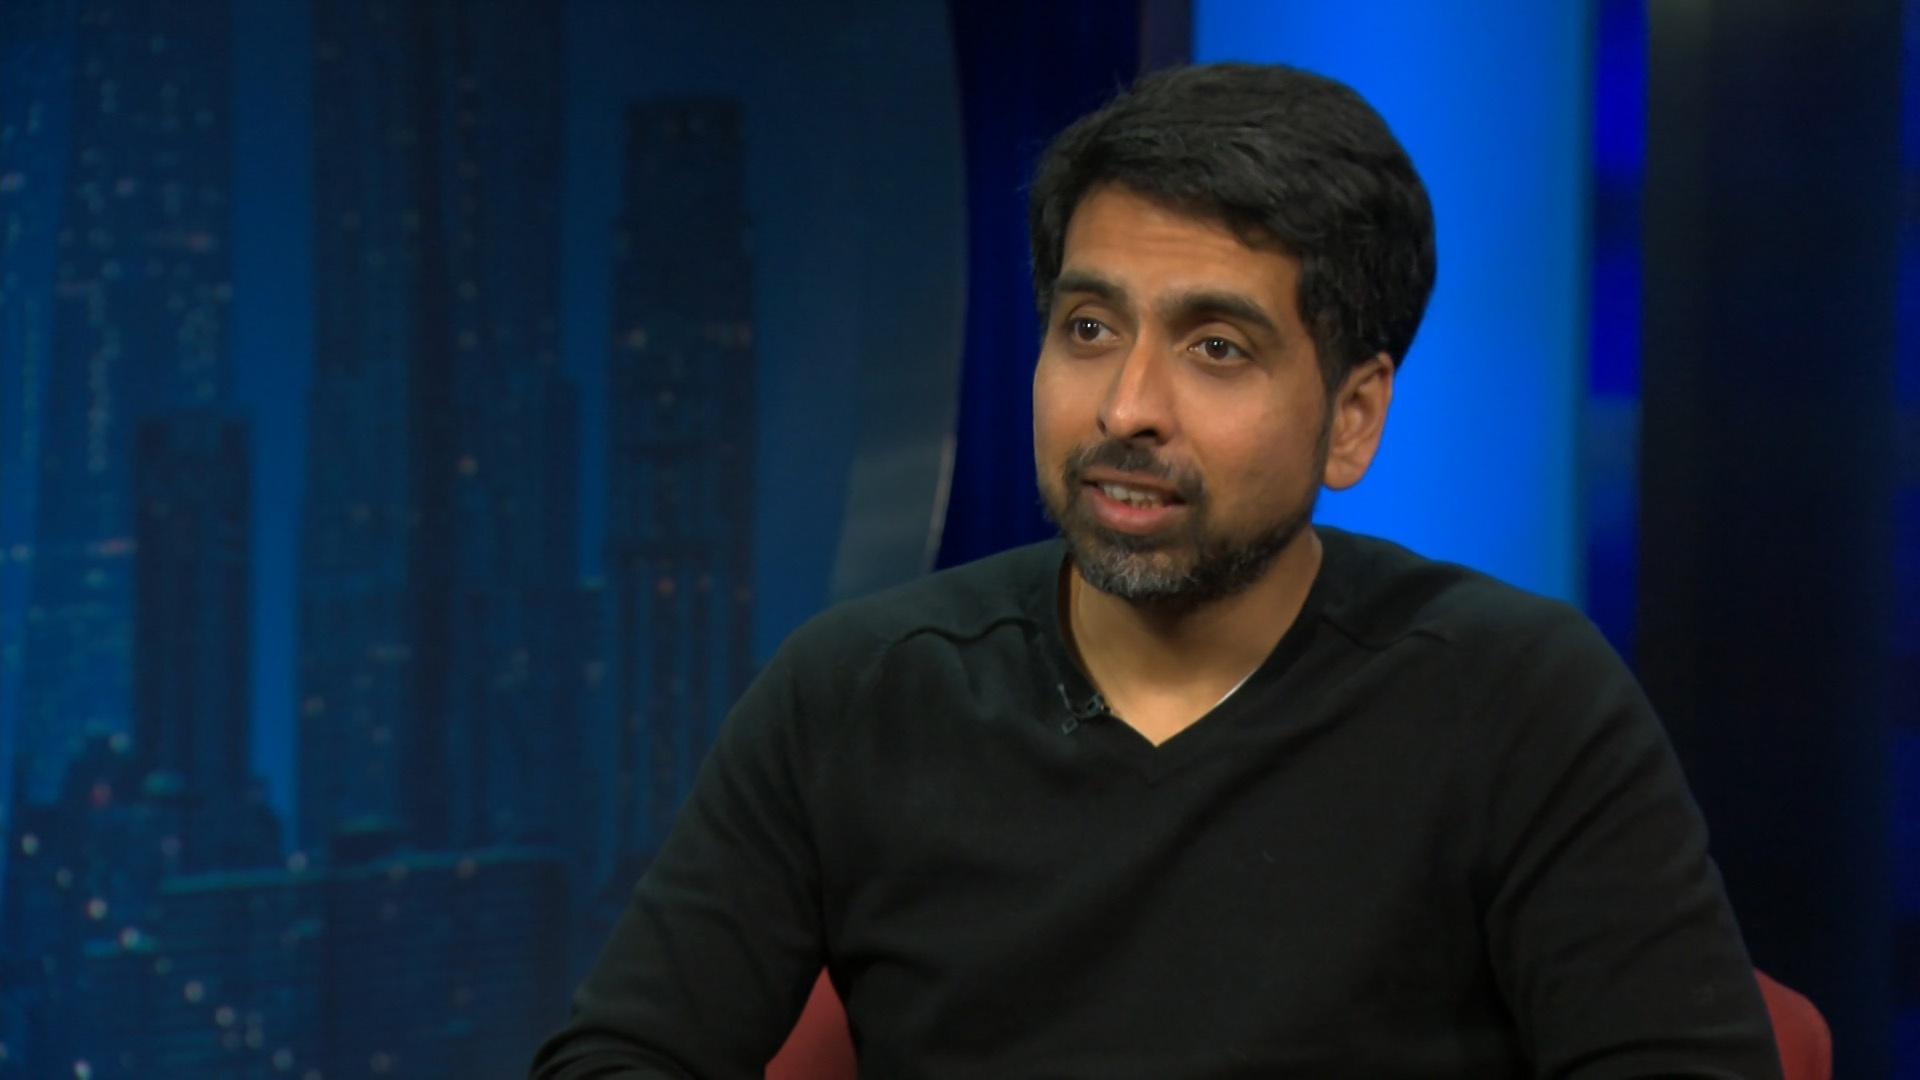 Khan Academy Founder Sal Khan on Wealth Inequality